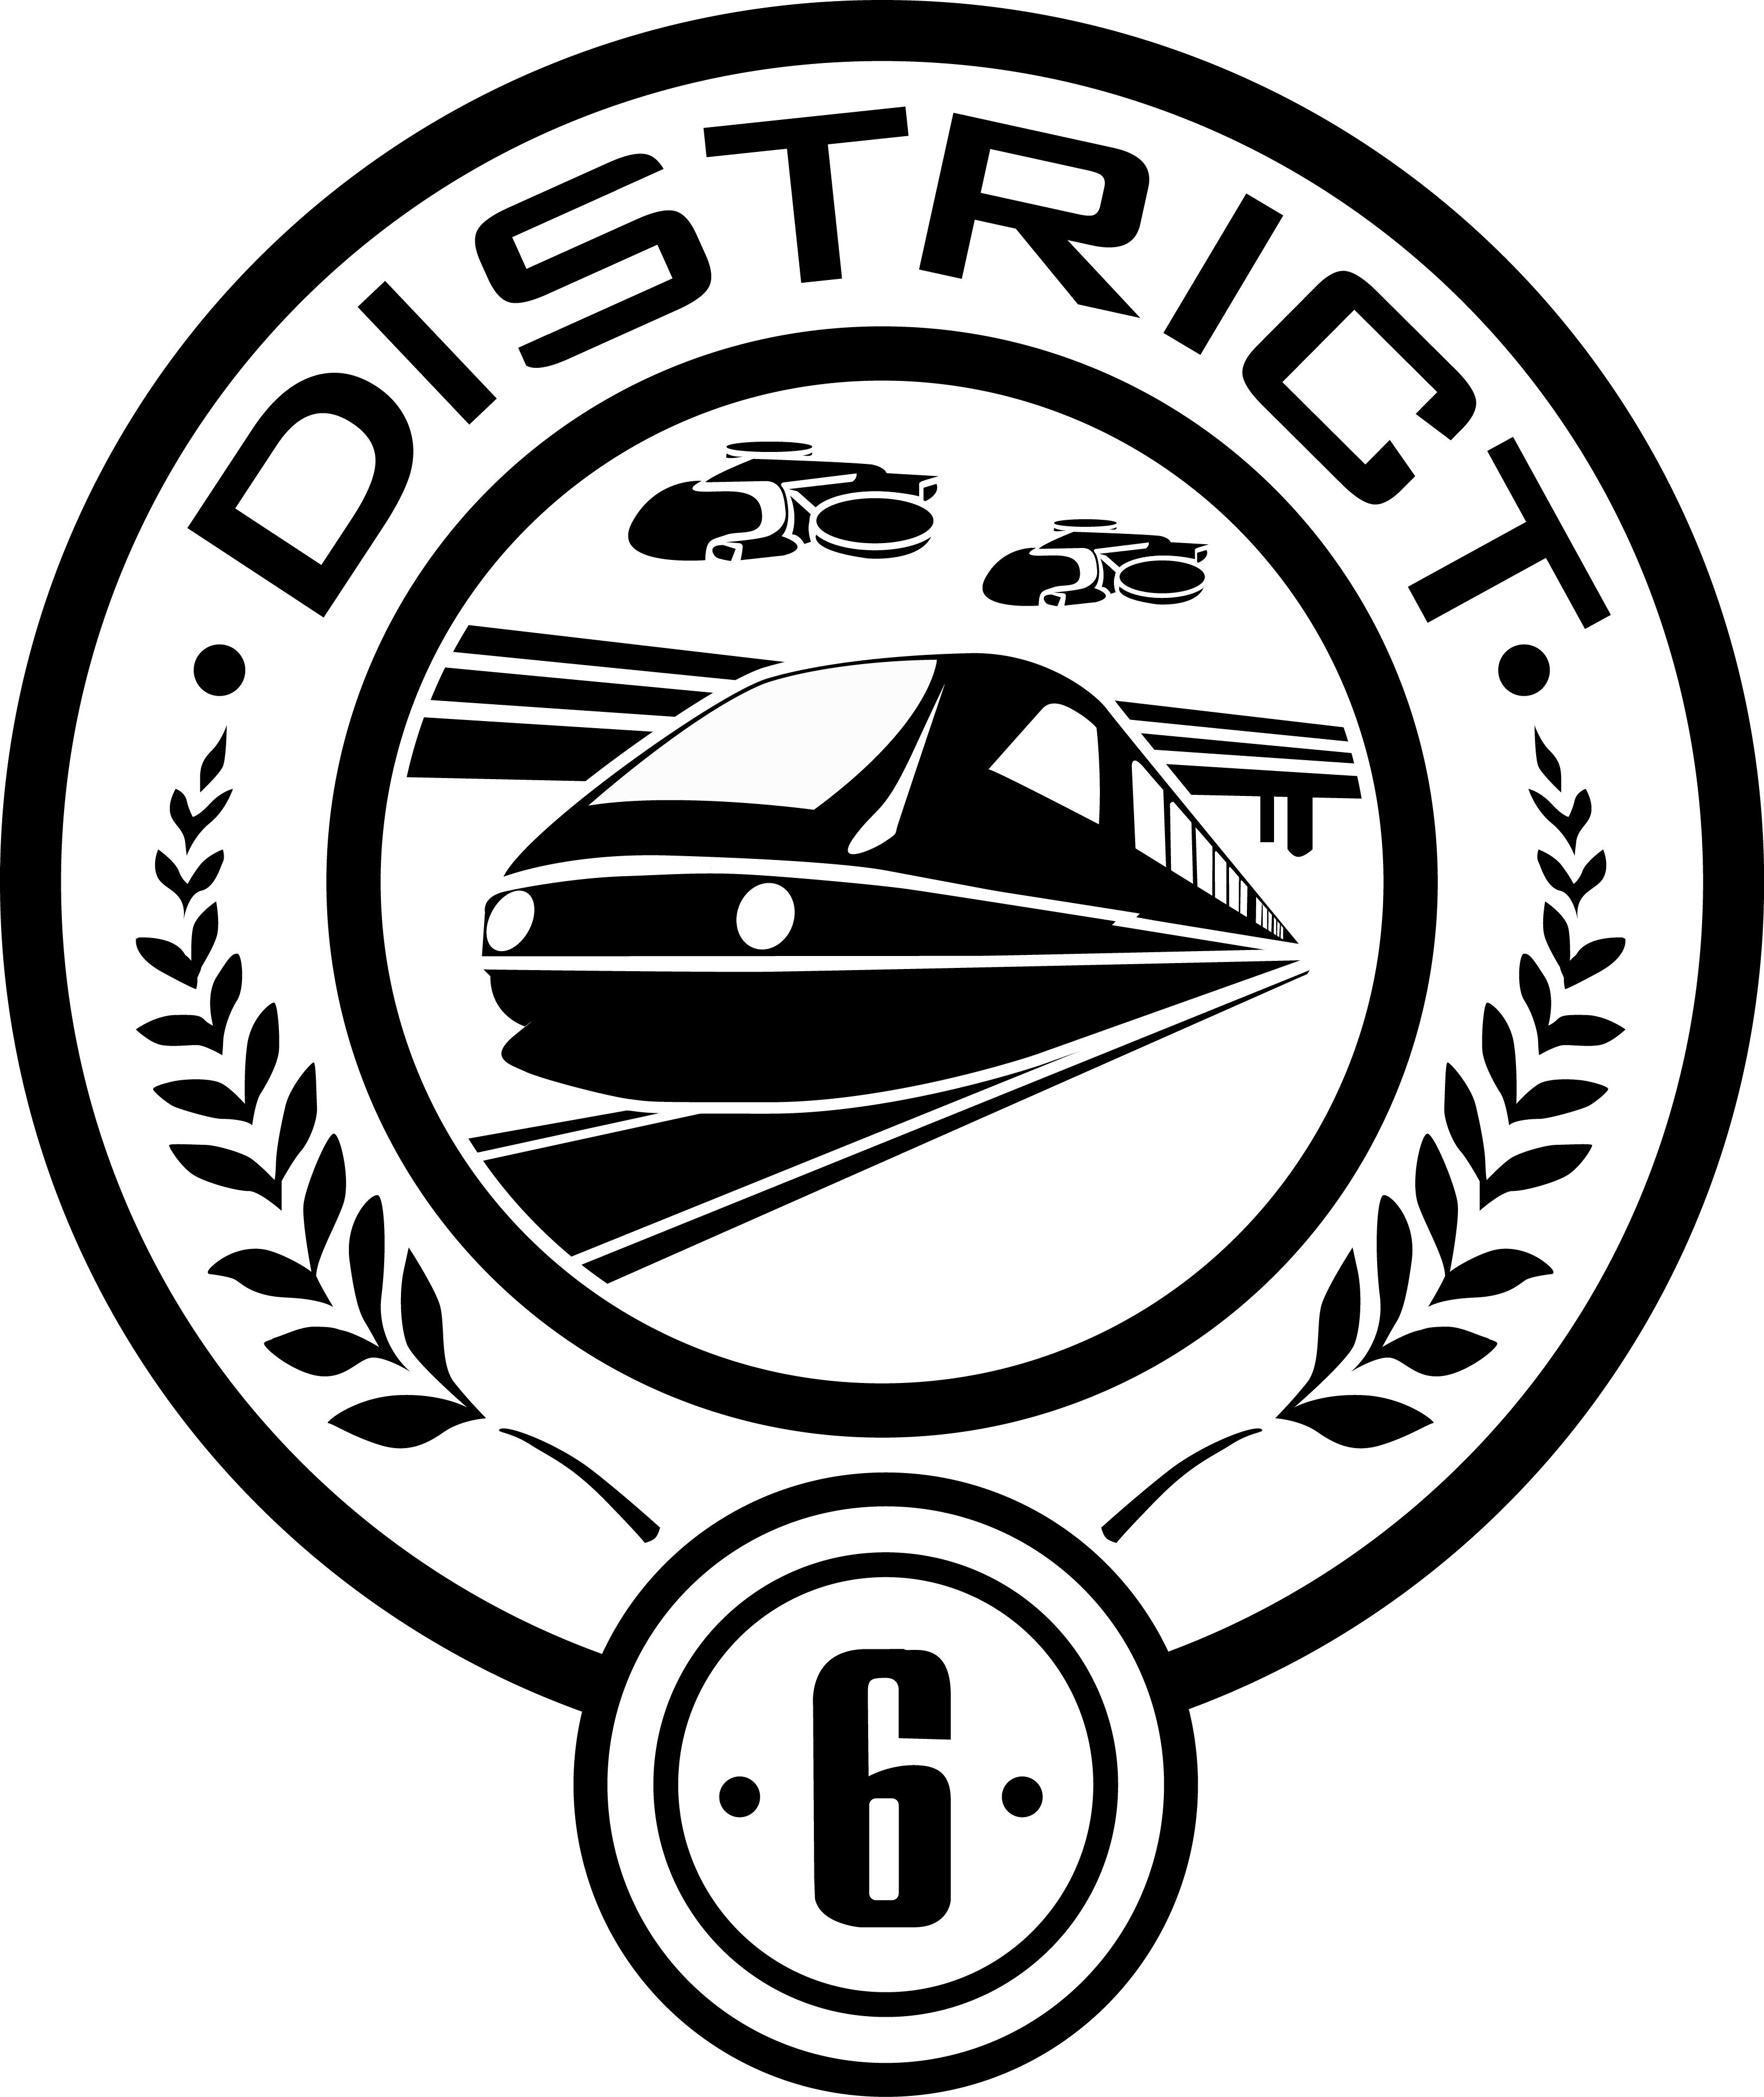 Gc5tw69 Crocodile Rocks The Geo Hunger Games District 6